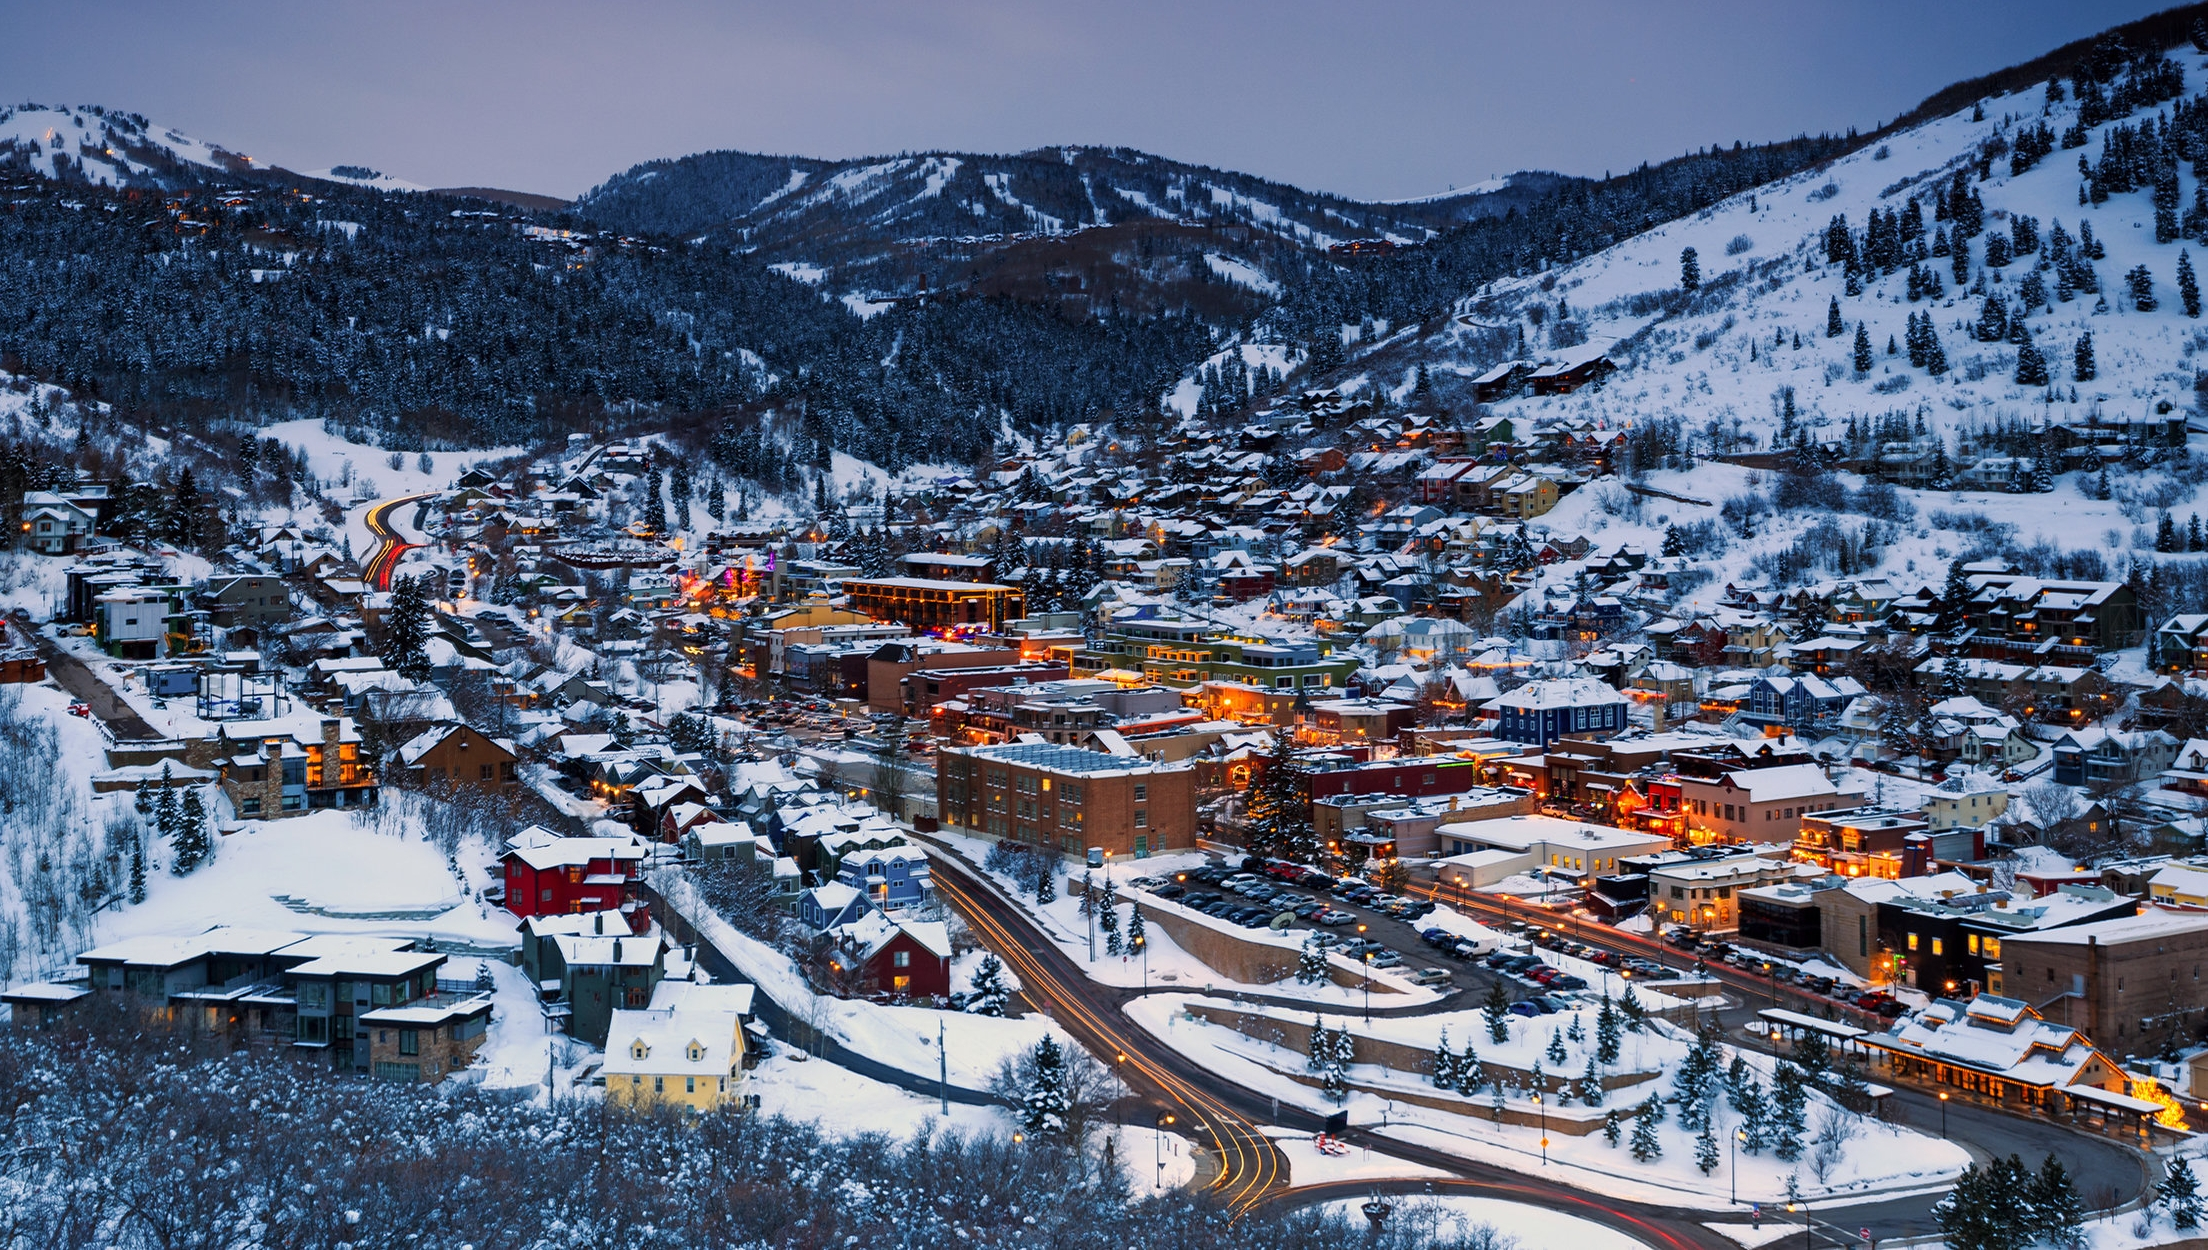 dinner, dining, nightlife - INTERNATIONALLY KNOWN FOR ITS DINING AND NIGHTLIFE, PARK CITY AND THE SURROUNDING AREA OFFER A WIDE VARIETY OF AWARD WINNING CHOICES THAT ARE SURE TO DELIGHT.